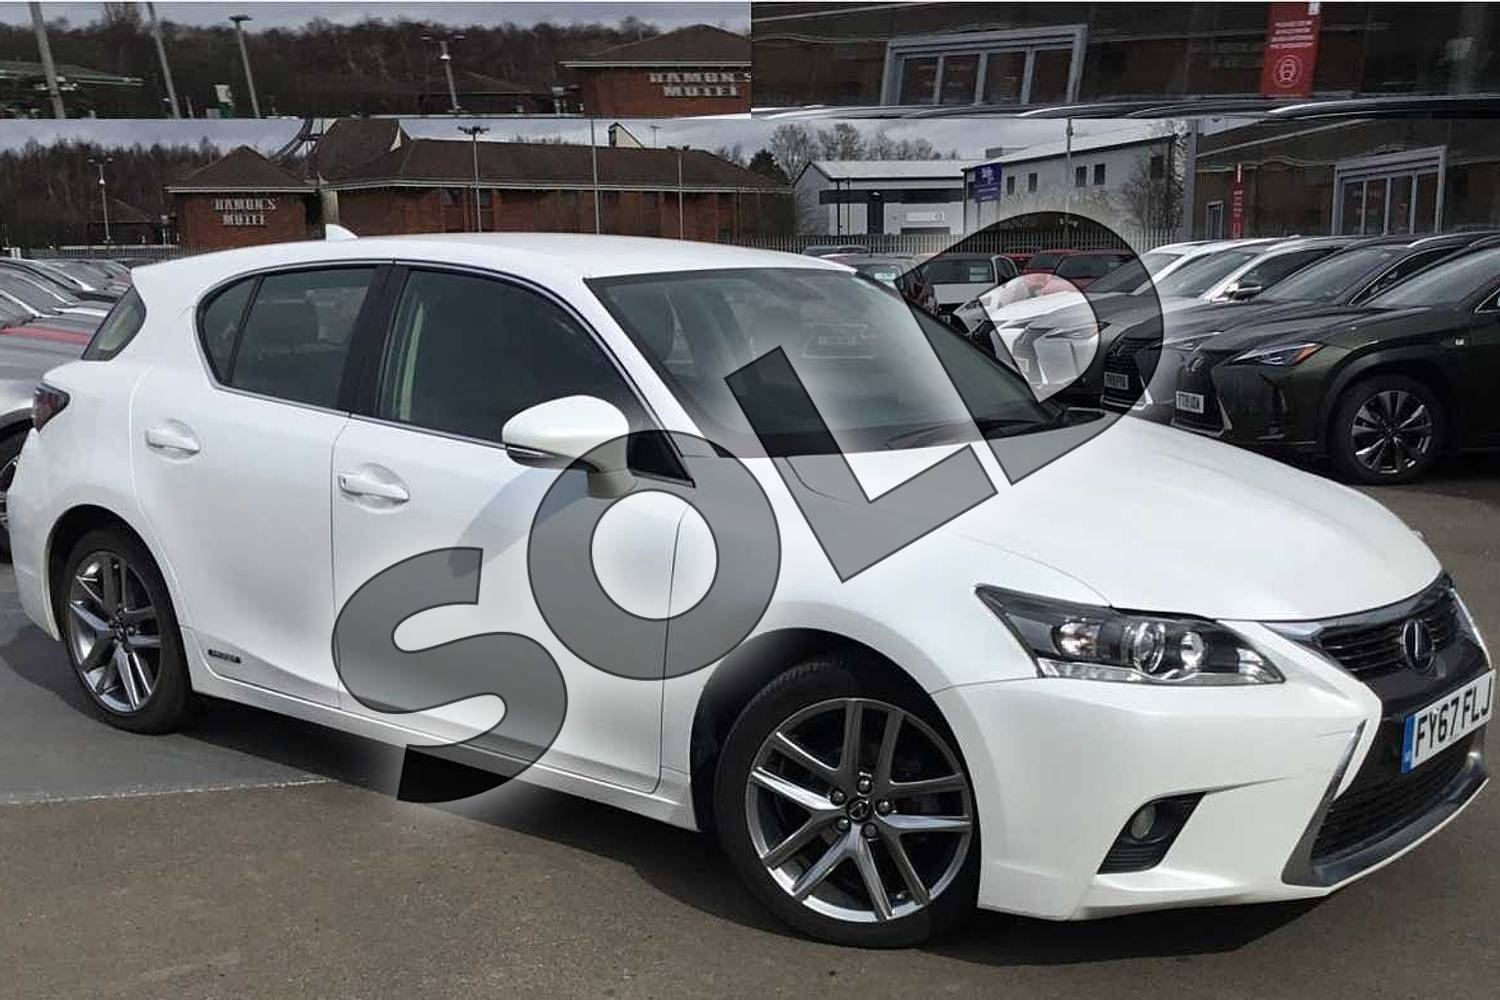 2017 Lexus CT Hatchback 200h 1.8 Executive Edition 5dr CVT Auto in Sonic White at Lexus Lincoln